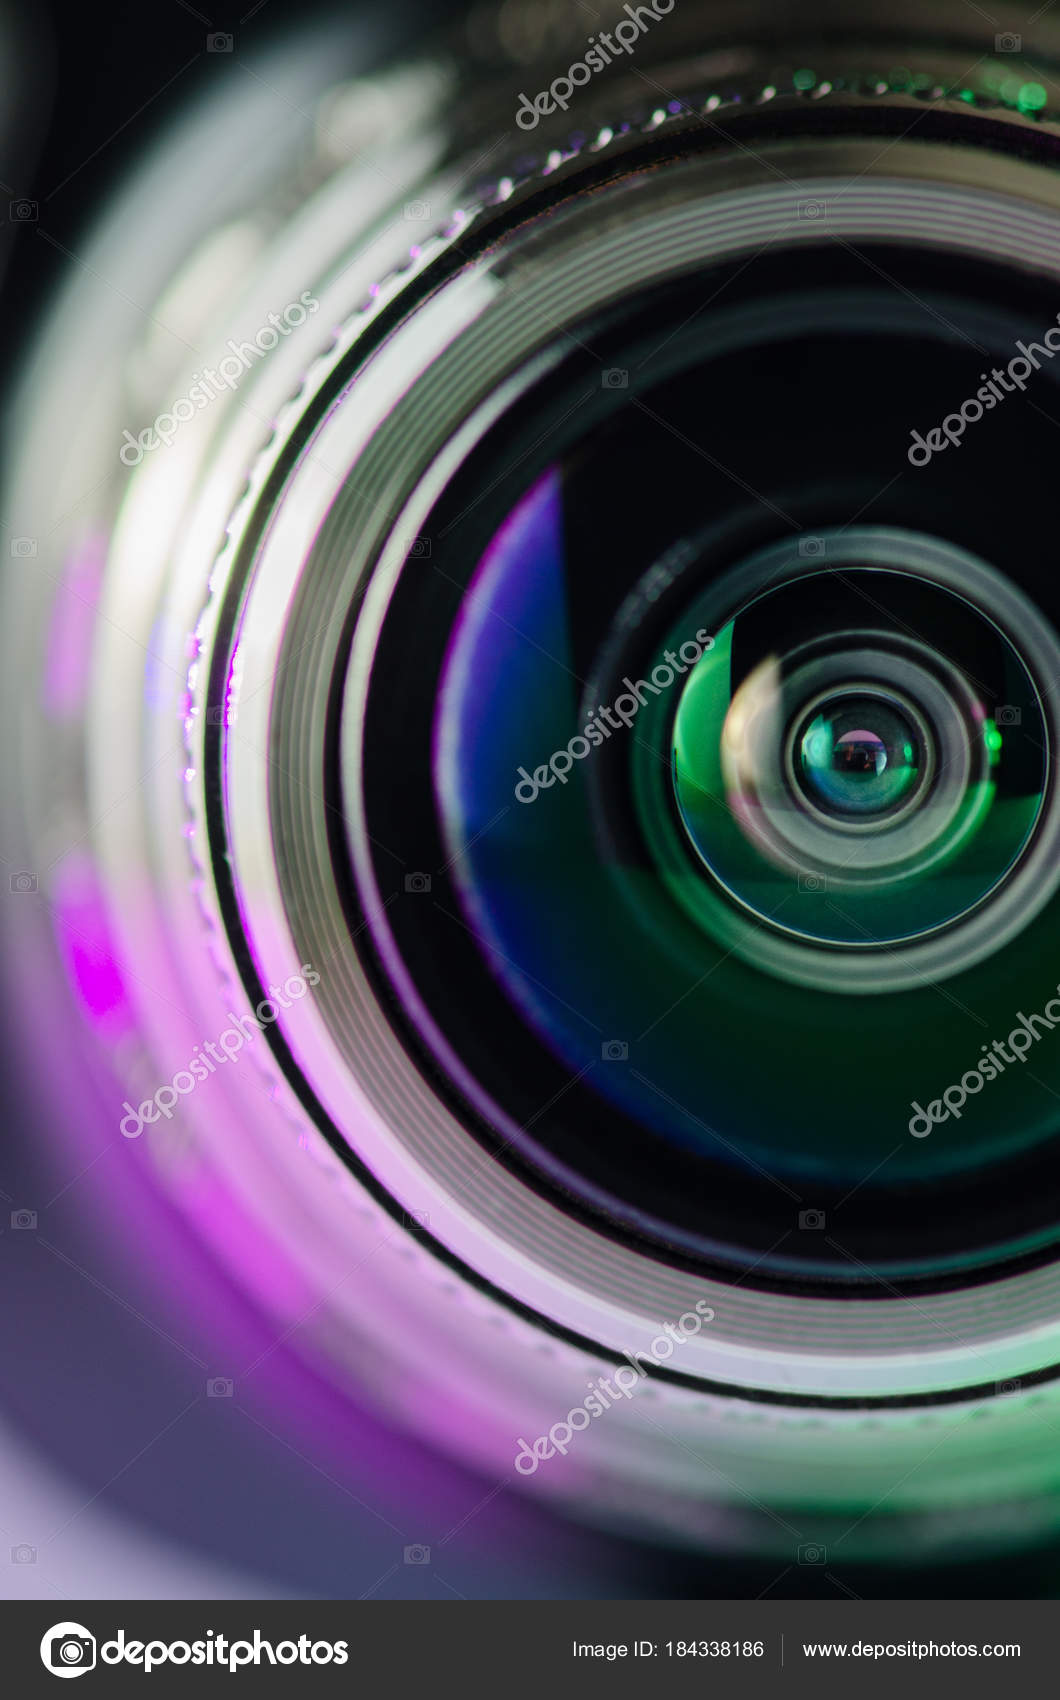 Camera lens and backlight are purple-green  Vertical photo